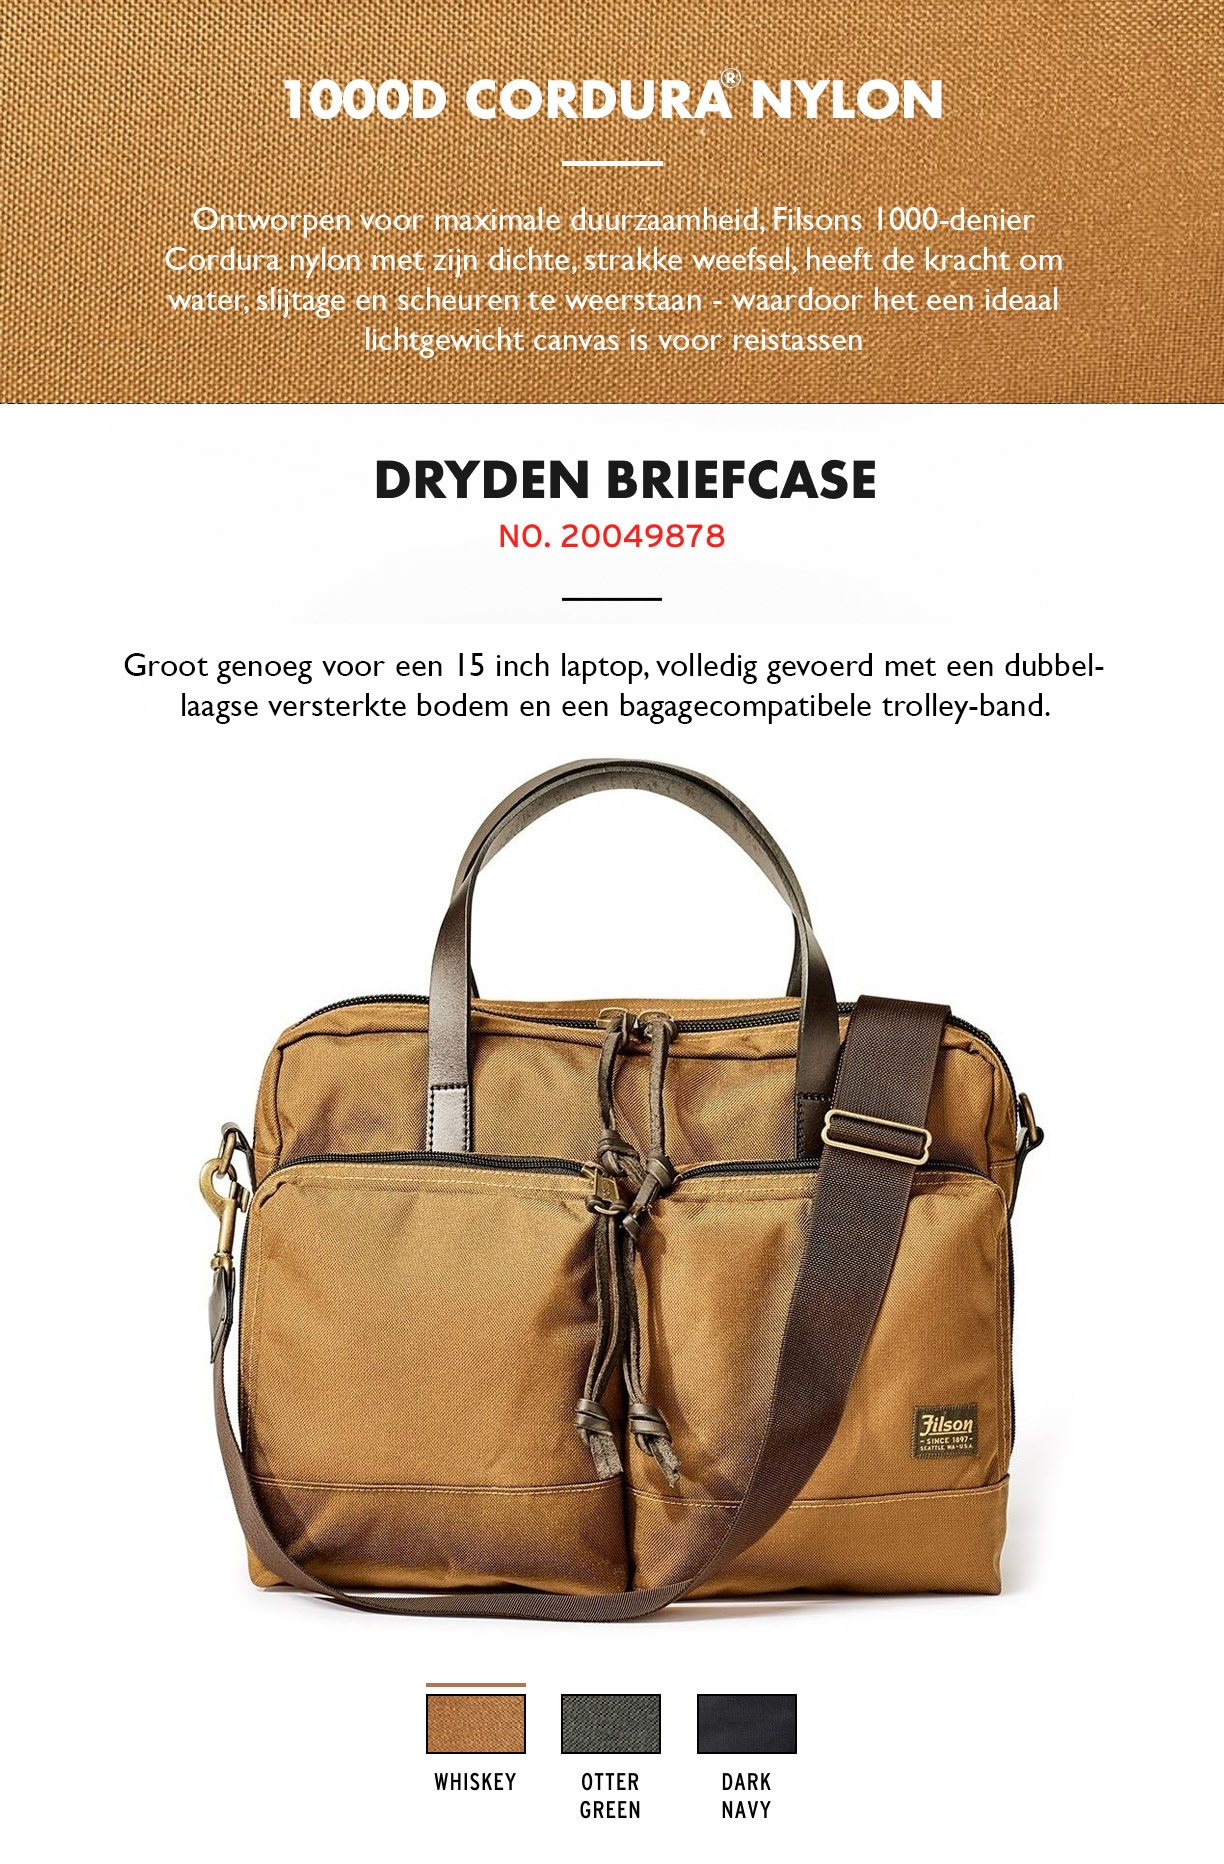 Filson Dryden Briefcase Whiskey Product-informatie